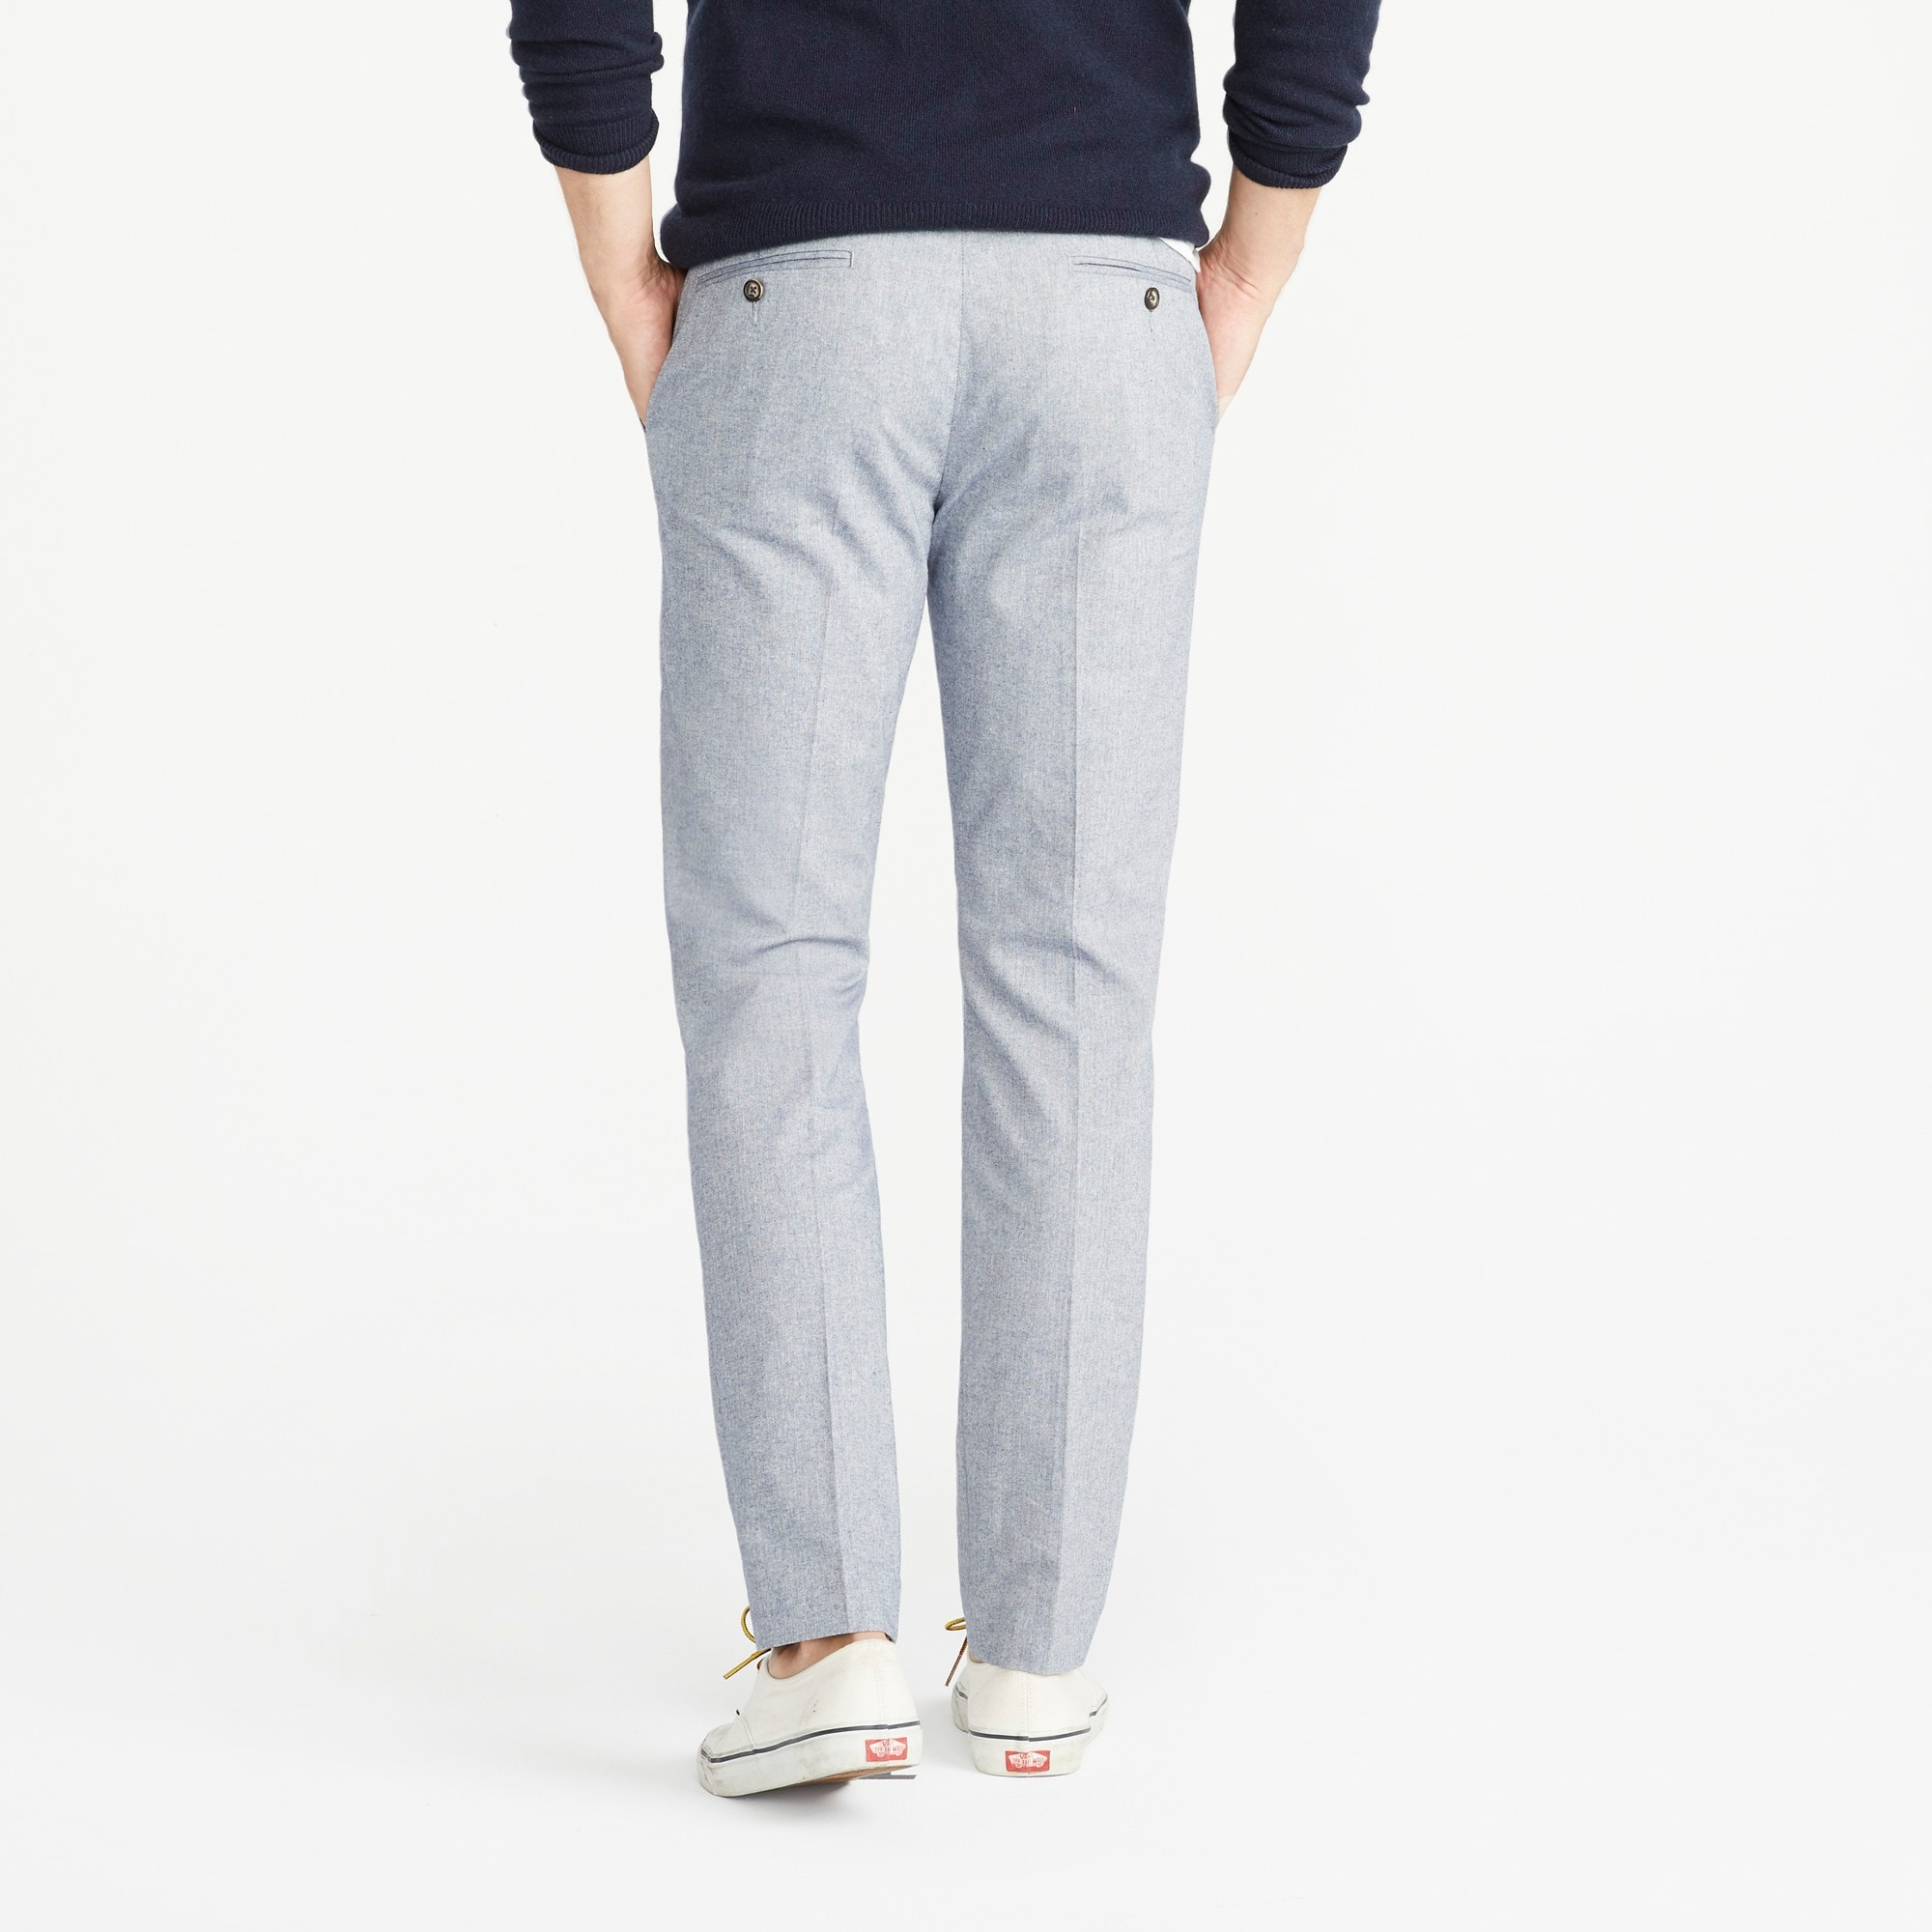 Image 4 for Ludlow Slim-fit stretch chambray pant in herringbone